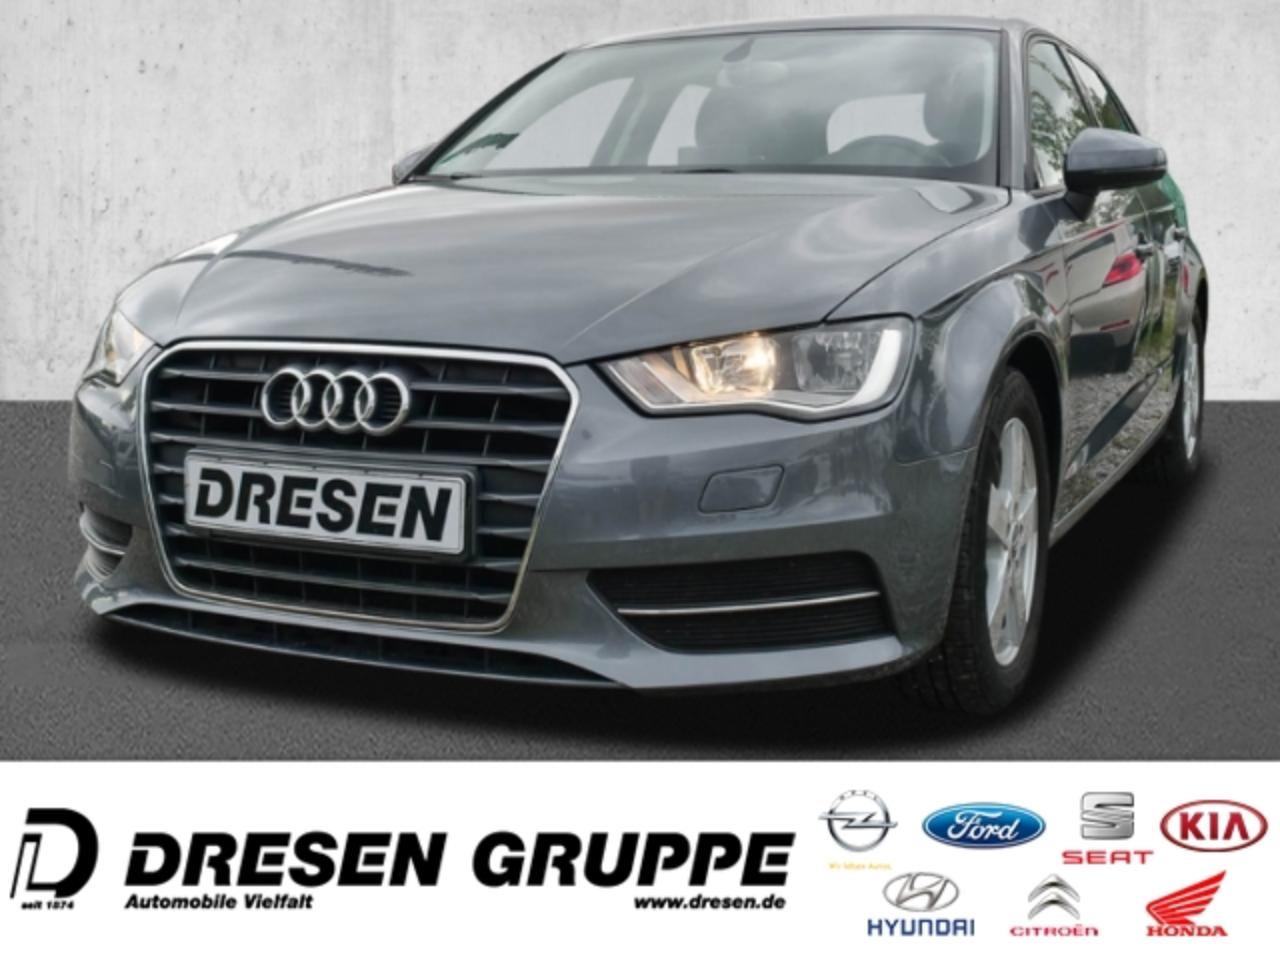 Audi A3 Sportback Attraction Klima+PDC+Freisprecheinrichtu